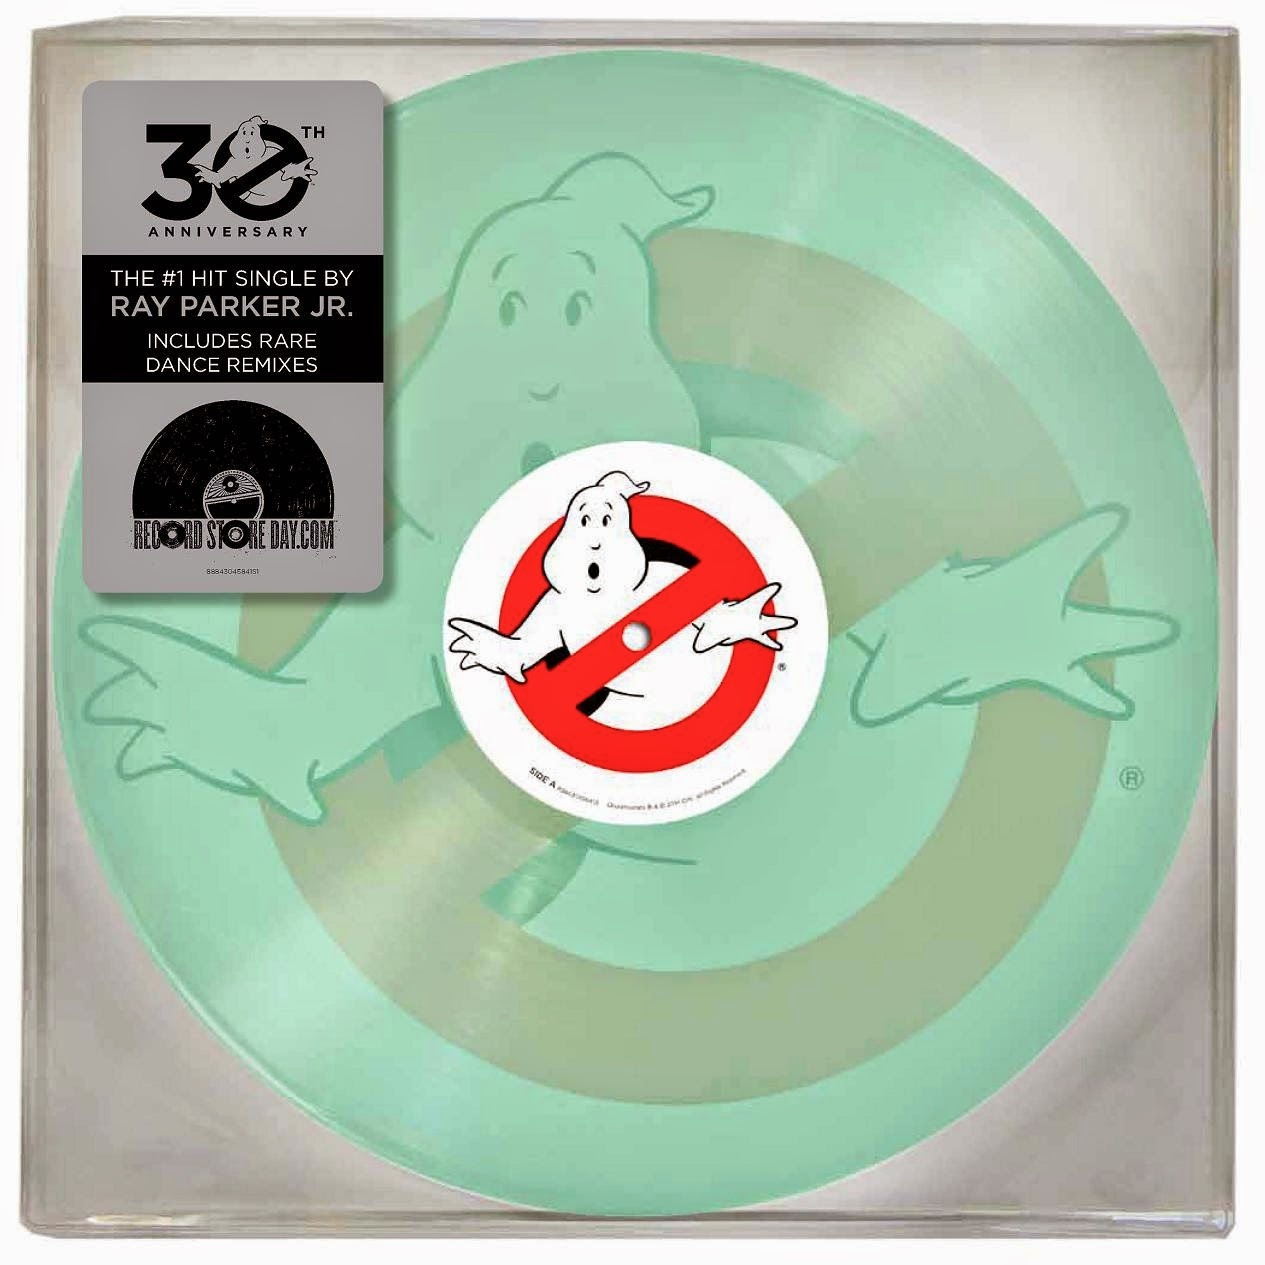 "Record Store Day 2014 Exclusive Ghostbusters Theme Song Glow in the Dark Single 10"" Vinyl Record by Ray Parker, Jr."